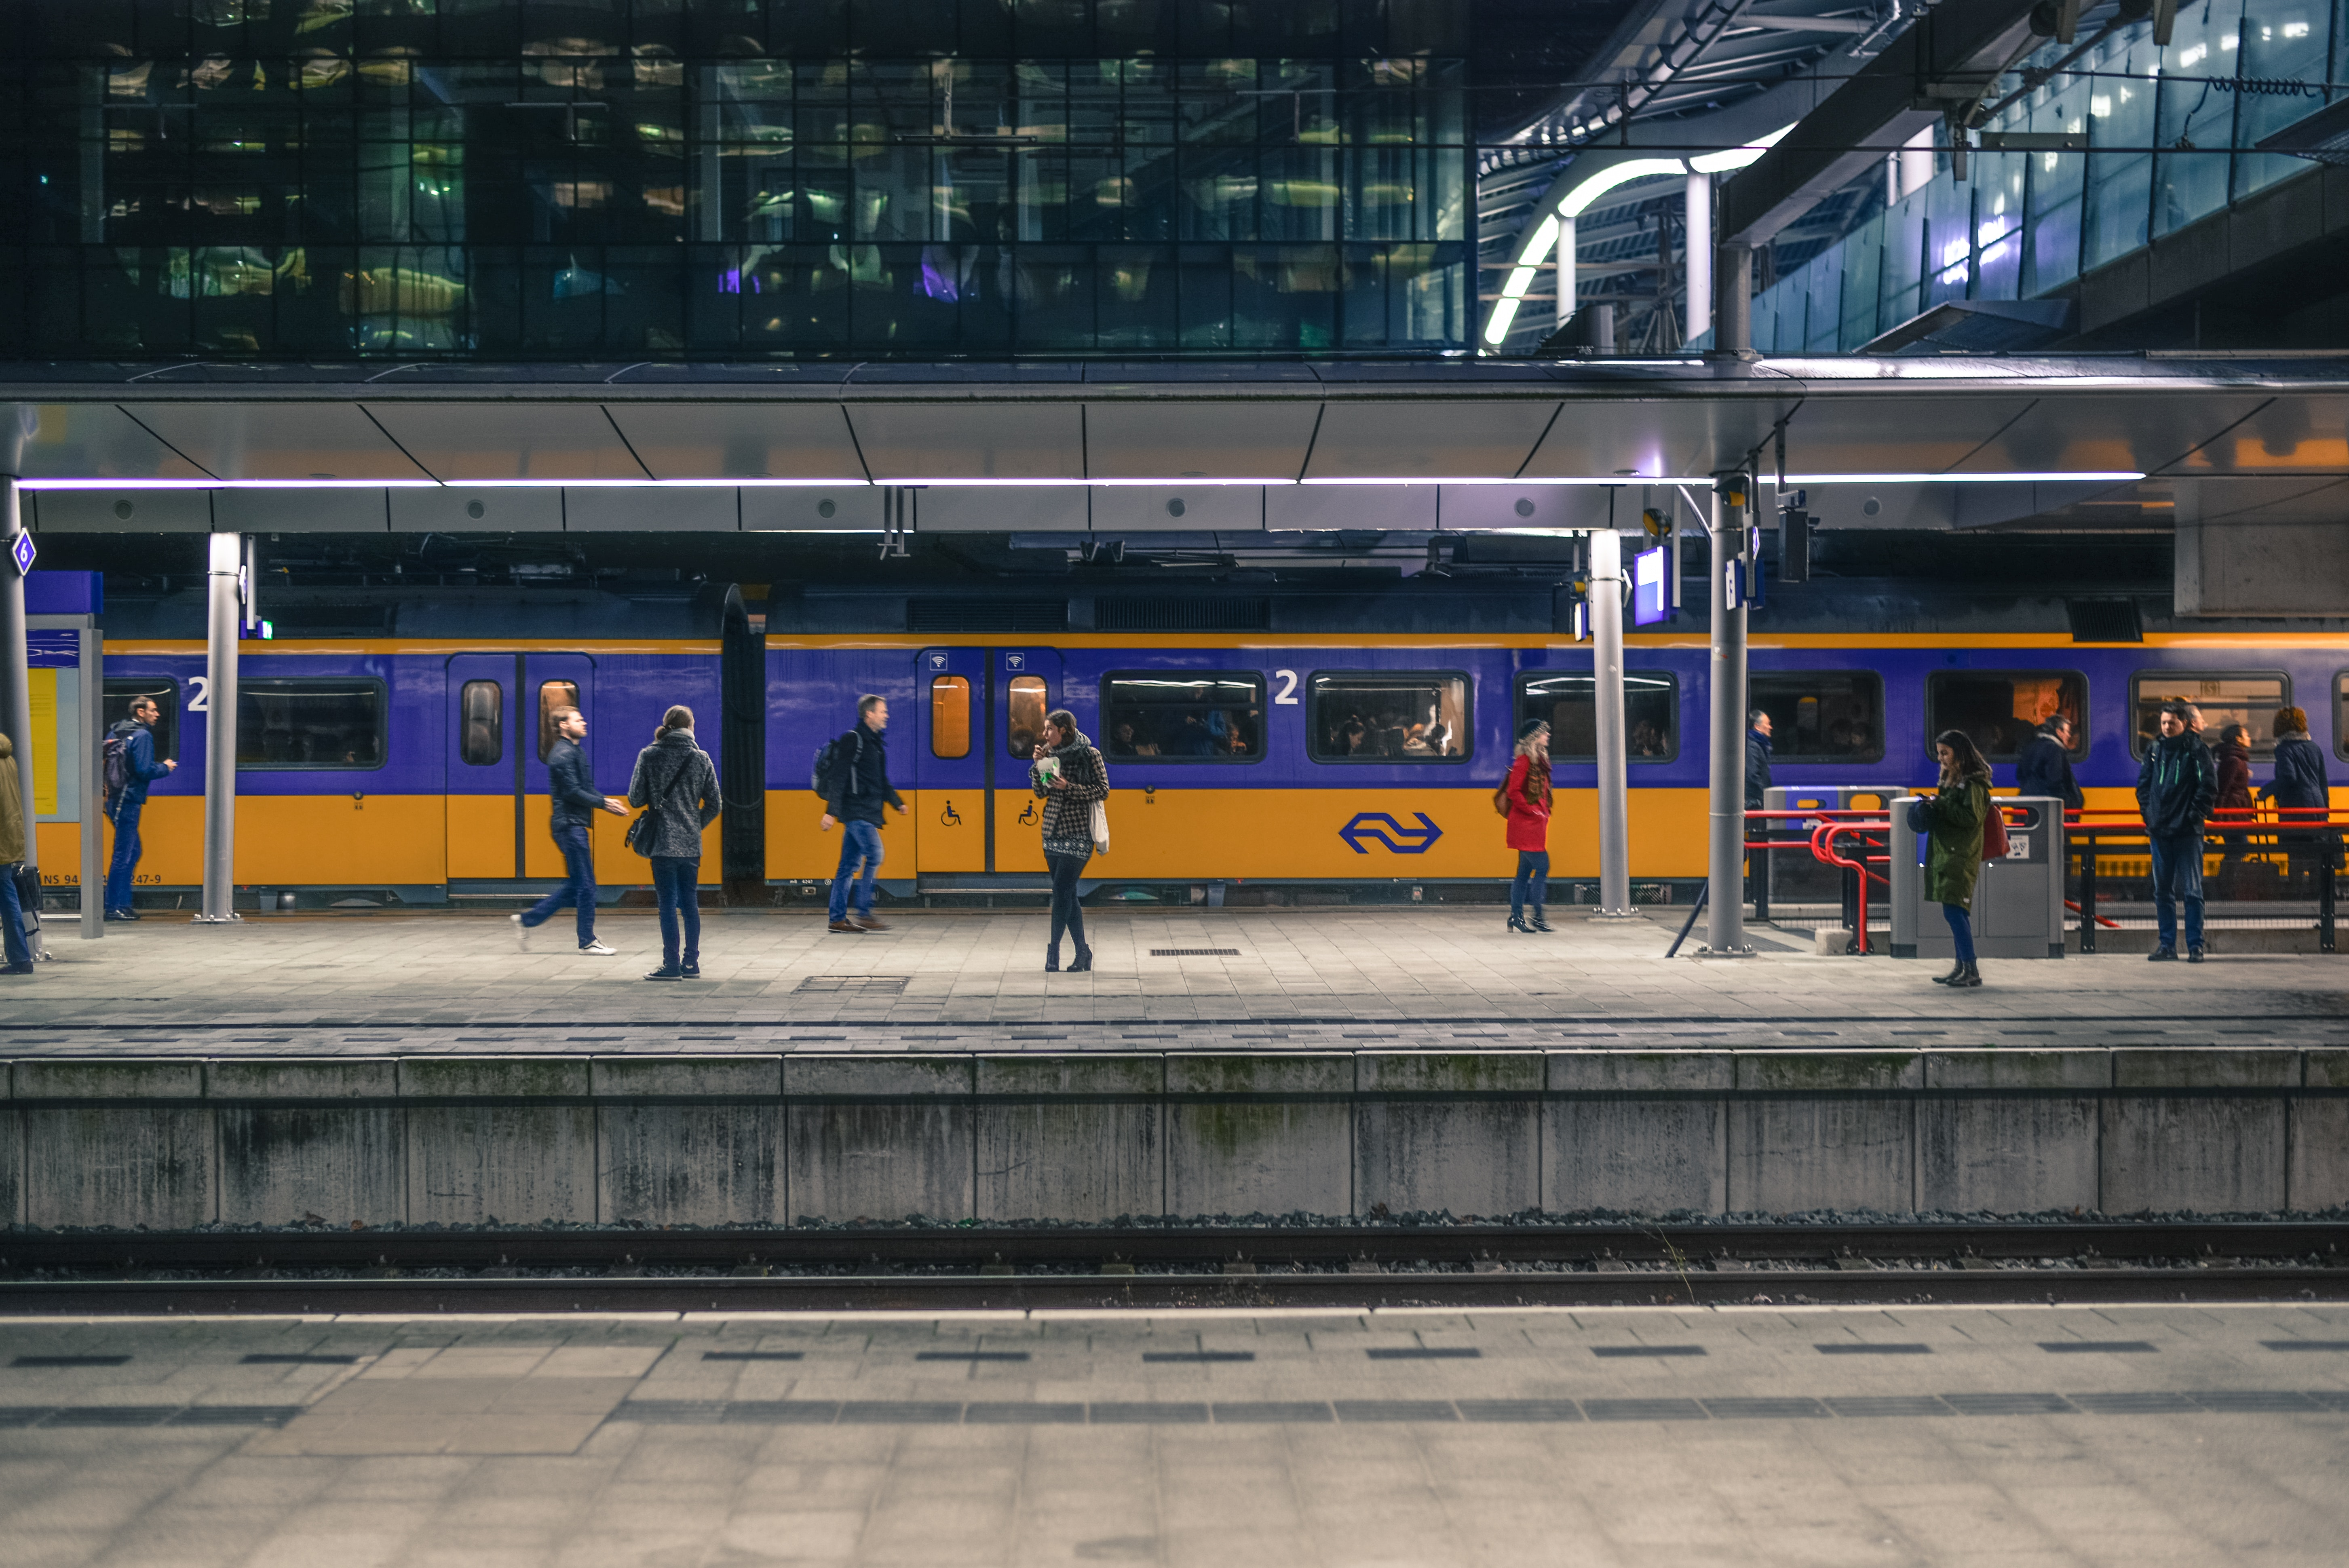 People Standing Near Train Under Shed, Building, Tracks, Railway station, Reflections, HQ Photo